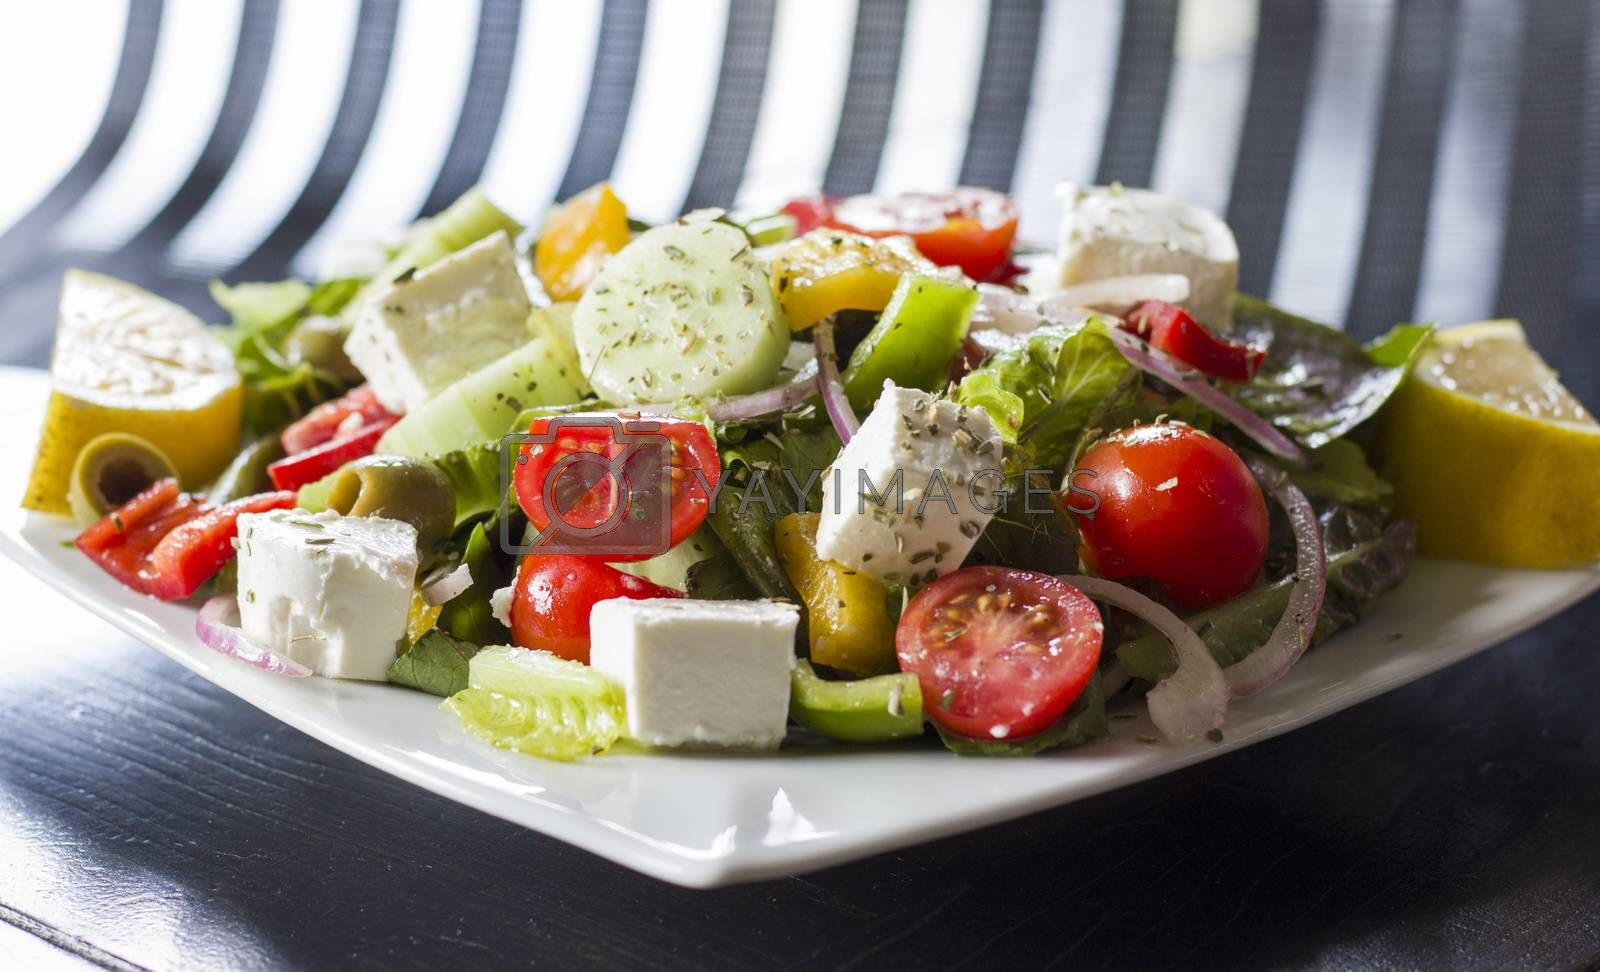 Vegetarian salad with tomatoes, cheese,vegetables and green salad. Studio shot.